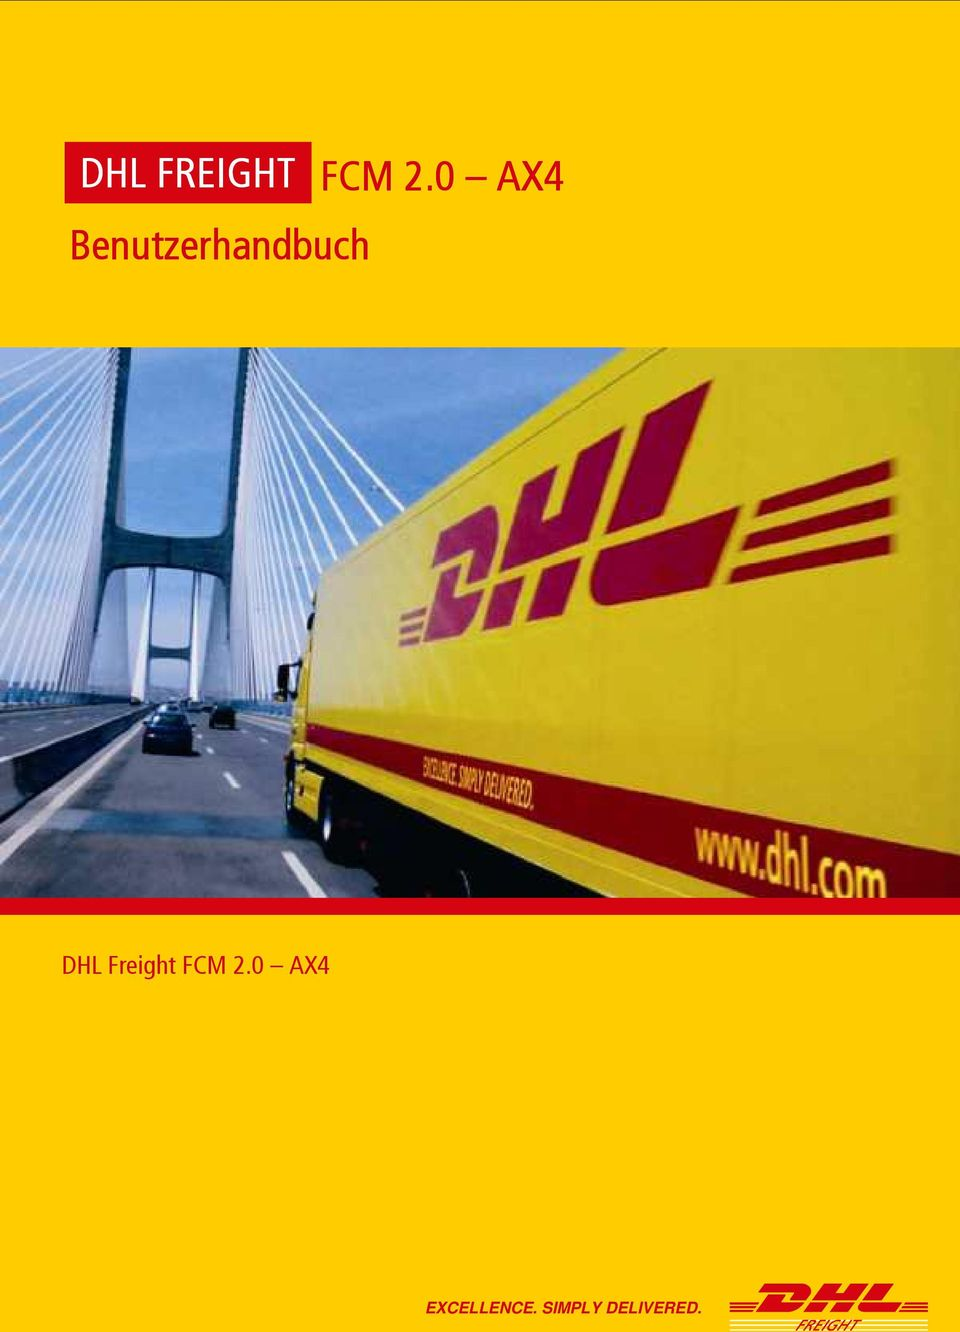 DHL Freight FCM 2.